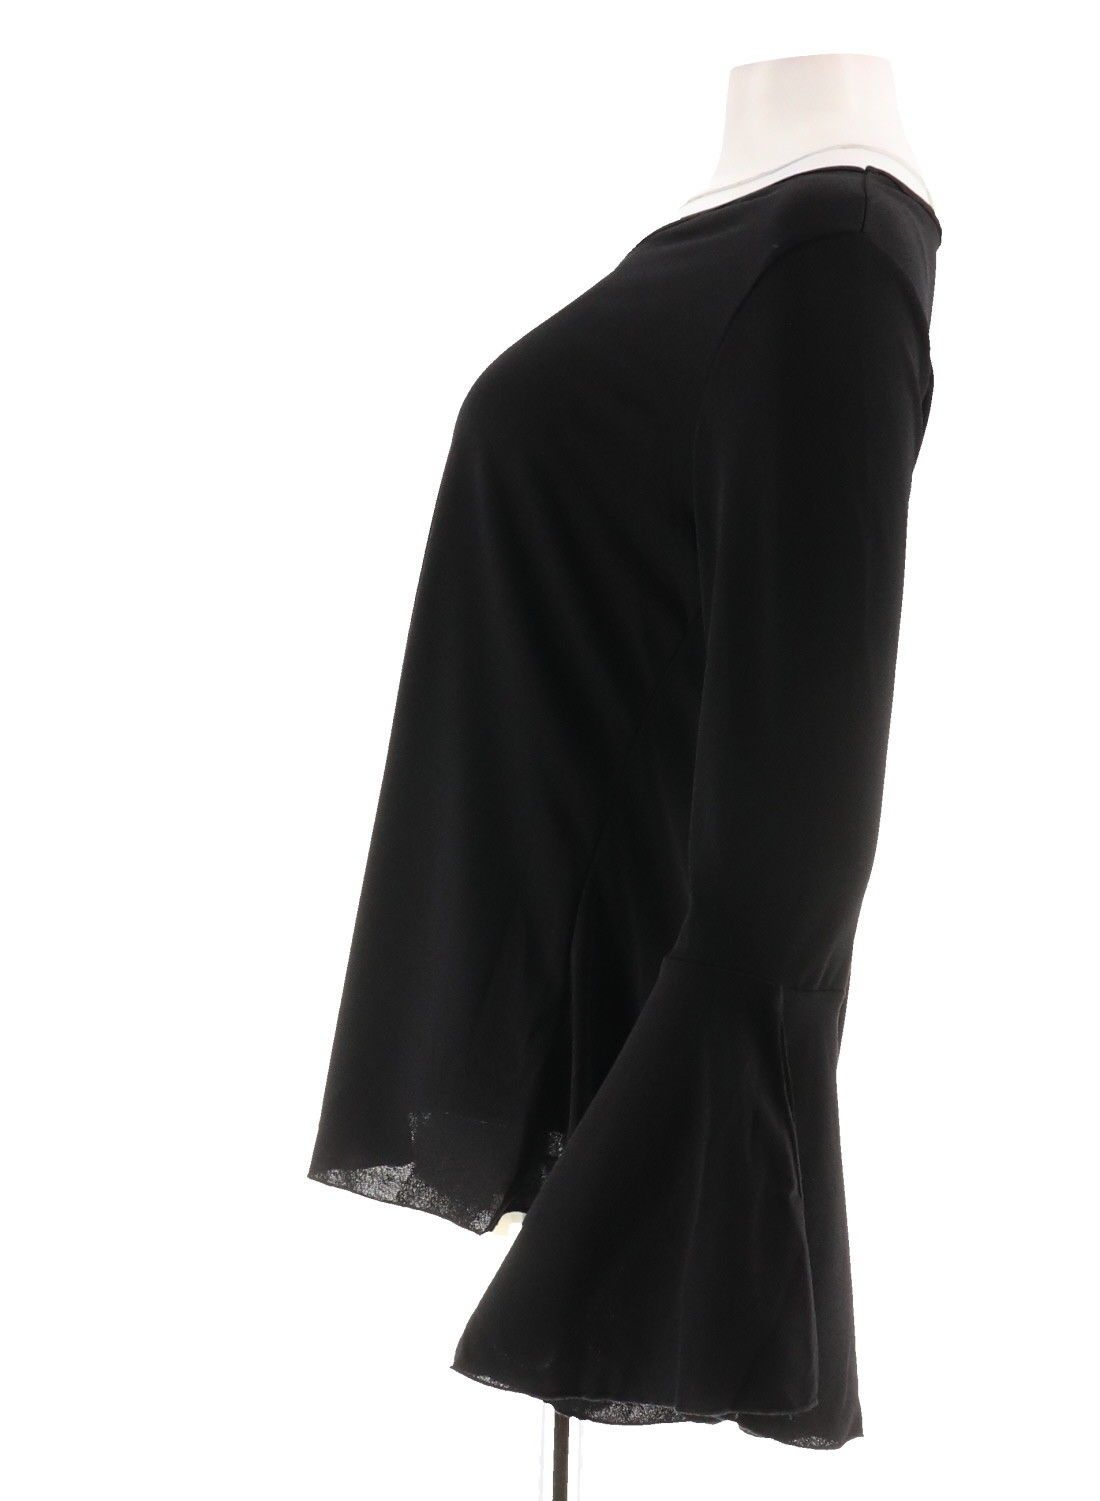 0e8bfb8c8fb79 IMAN Runway Chic Luxurious Bell-Sleeves Top V Neck Cuffs BLACK XL NEW  592-389  19.97